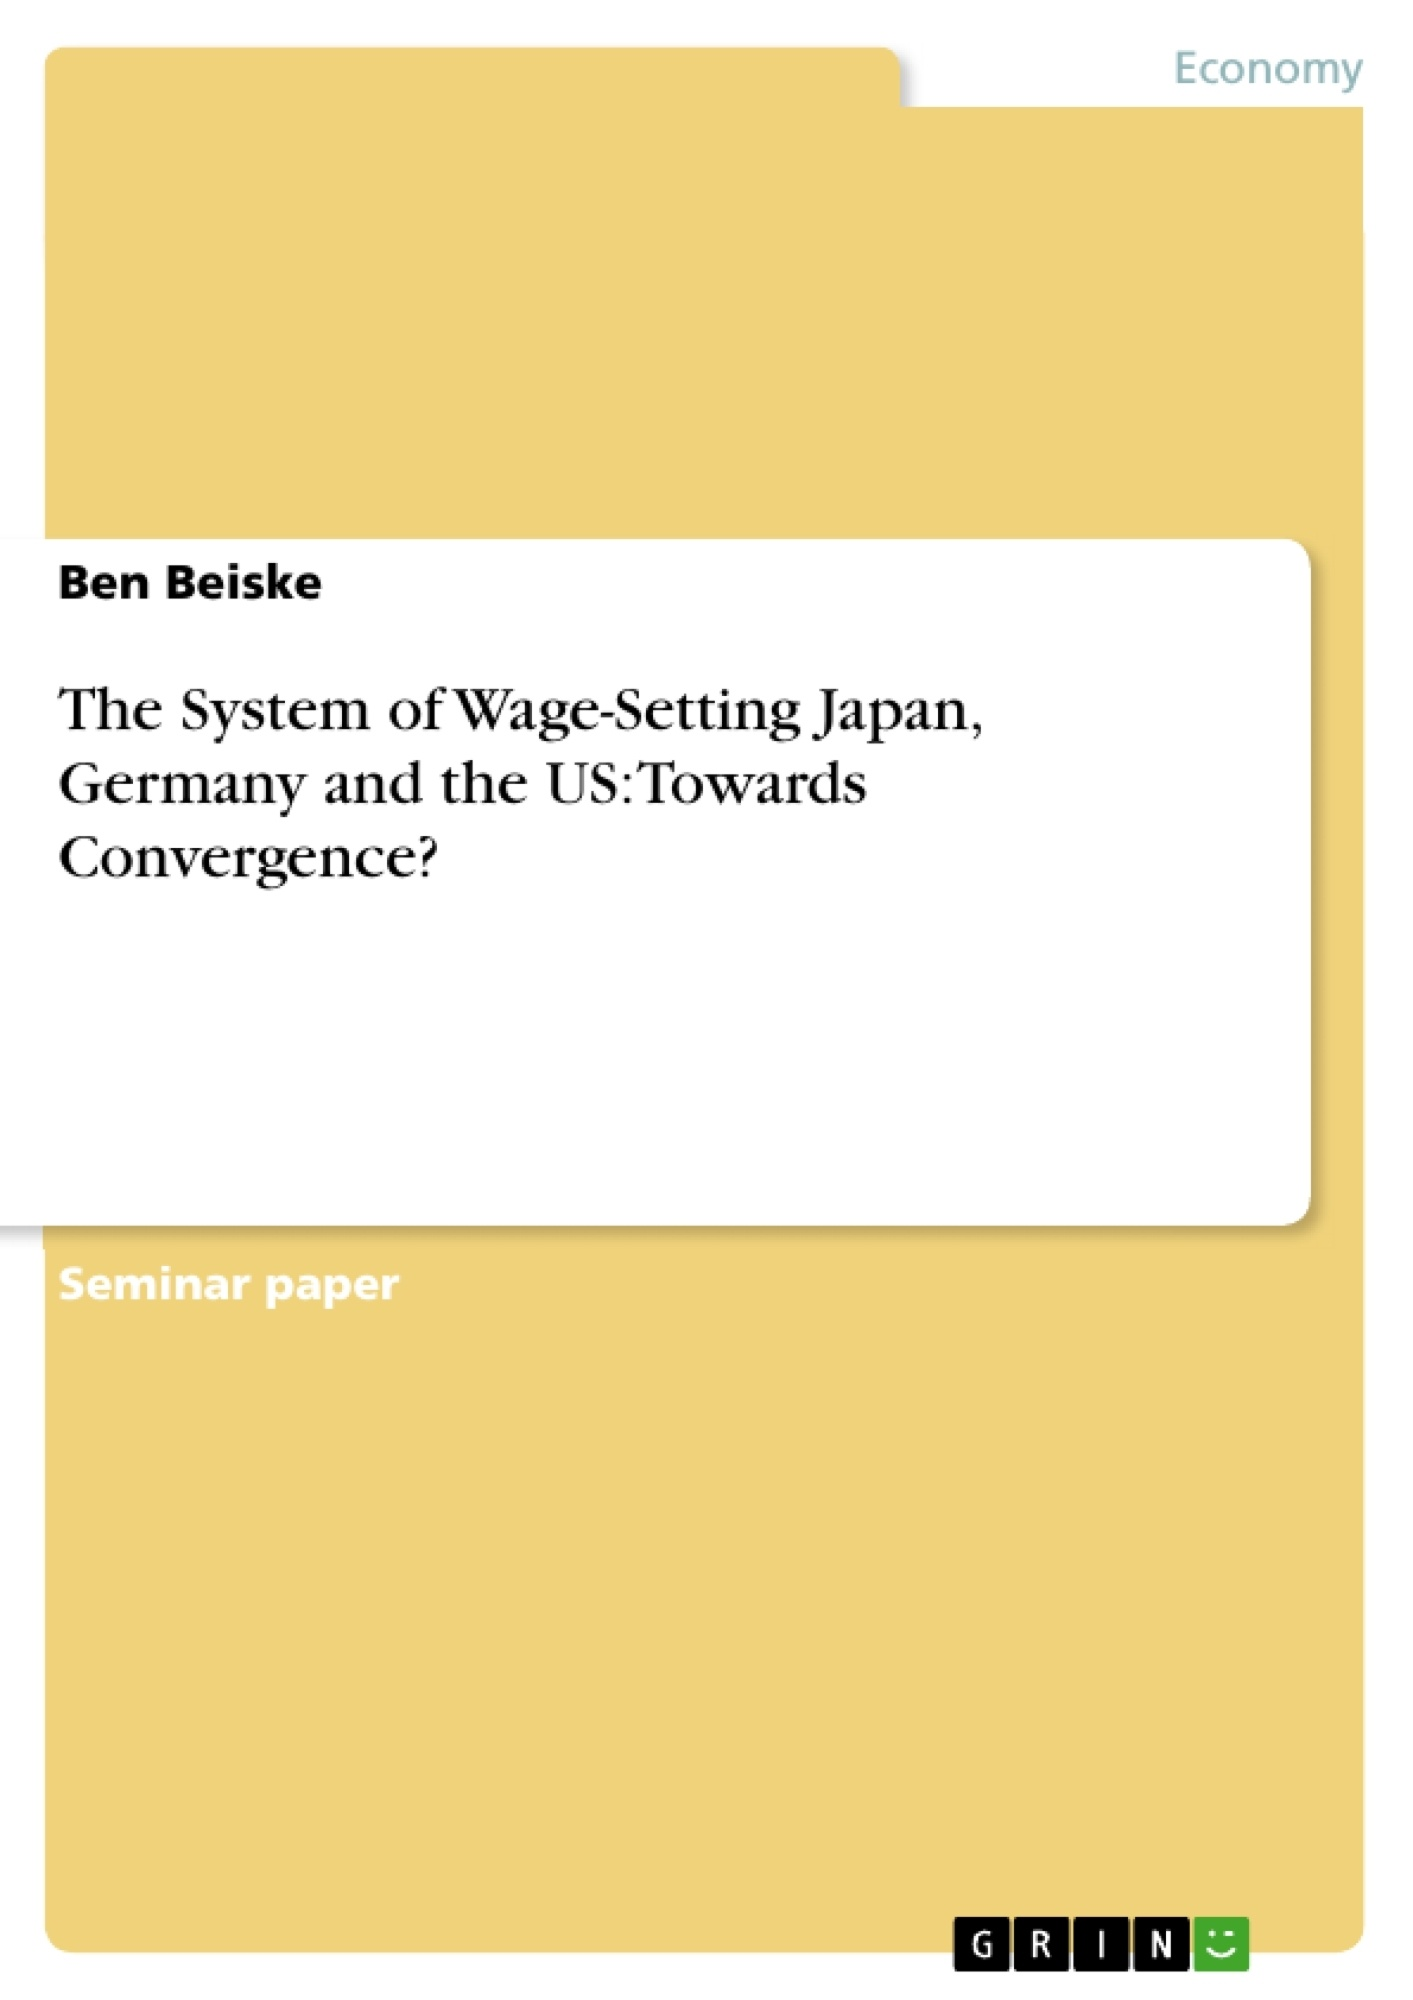 Title: The System of Wage-Setting Japan, Germany and the US: Towards Convergence?